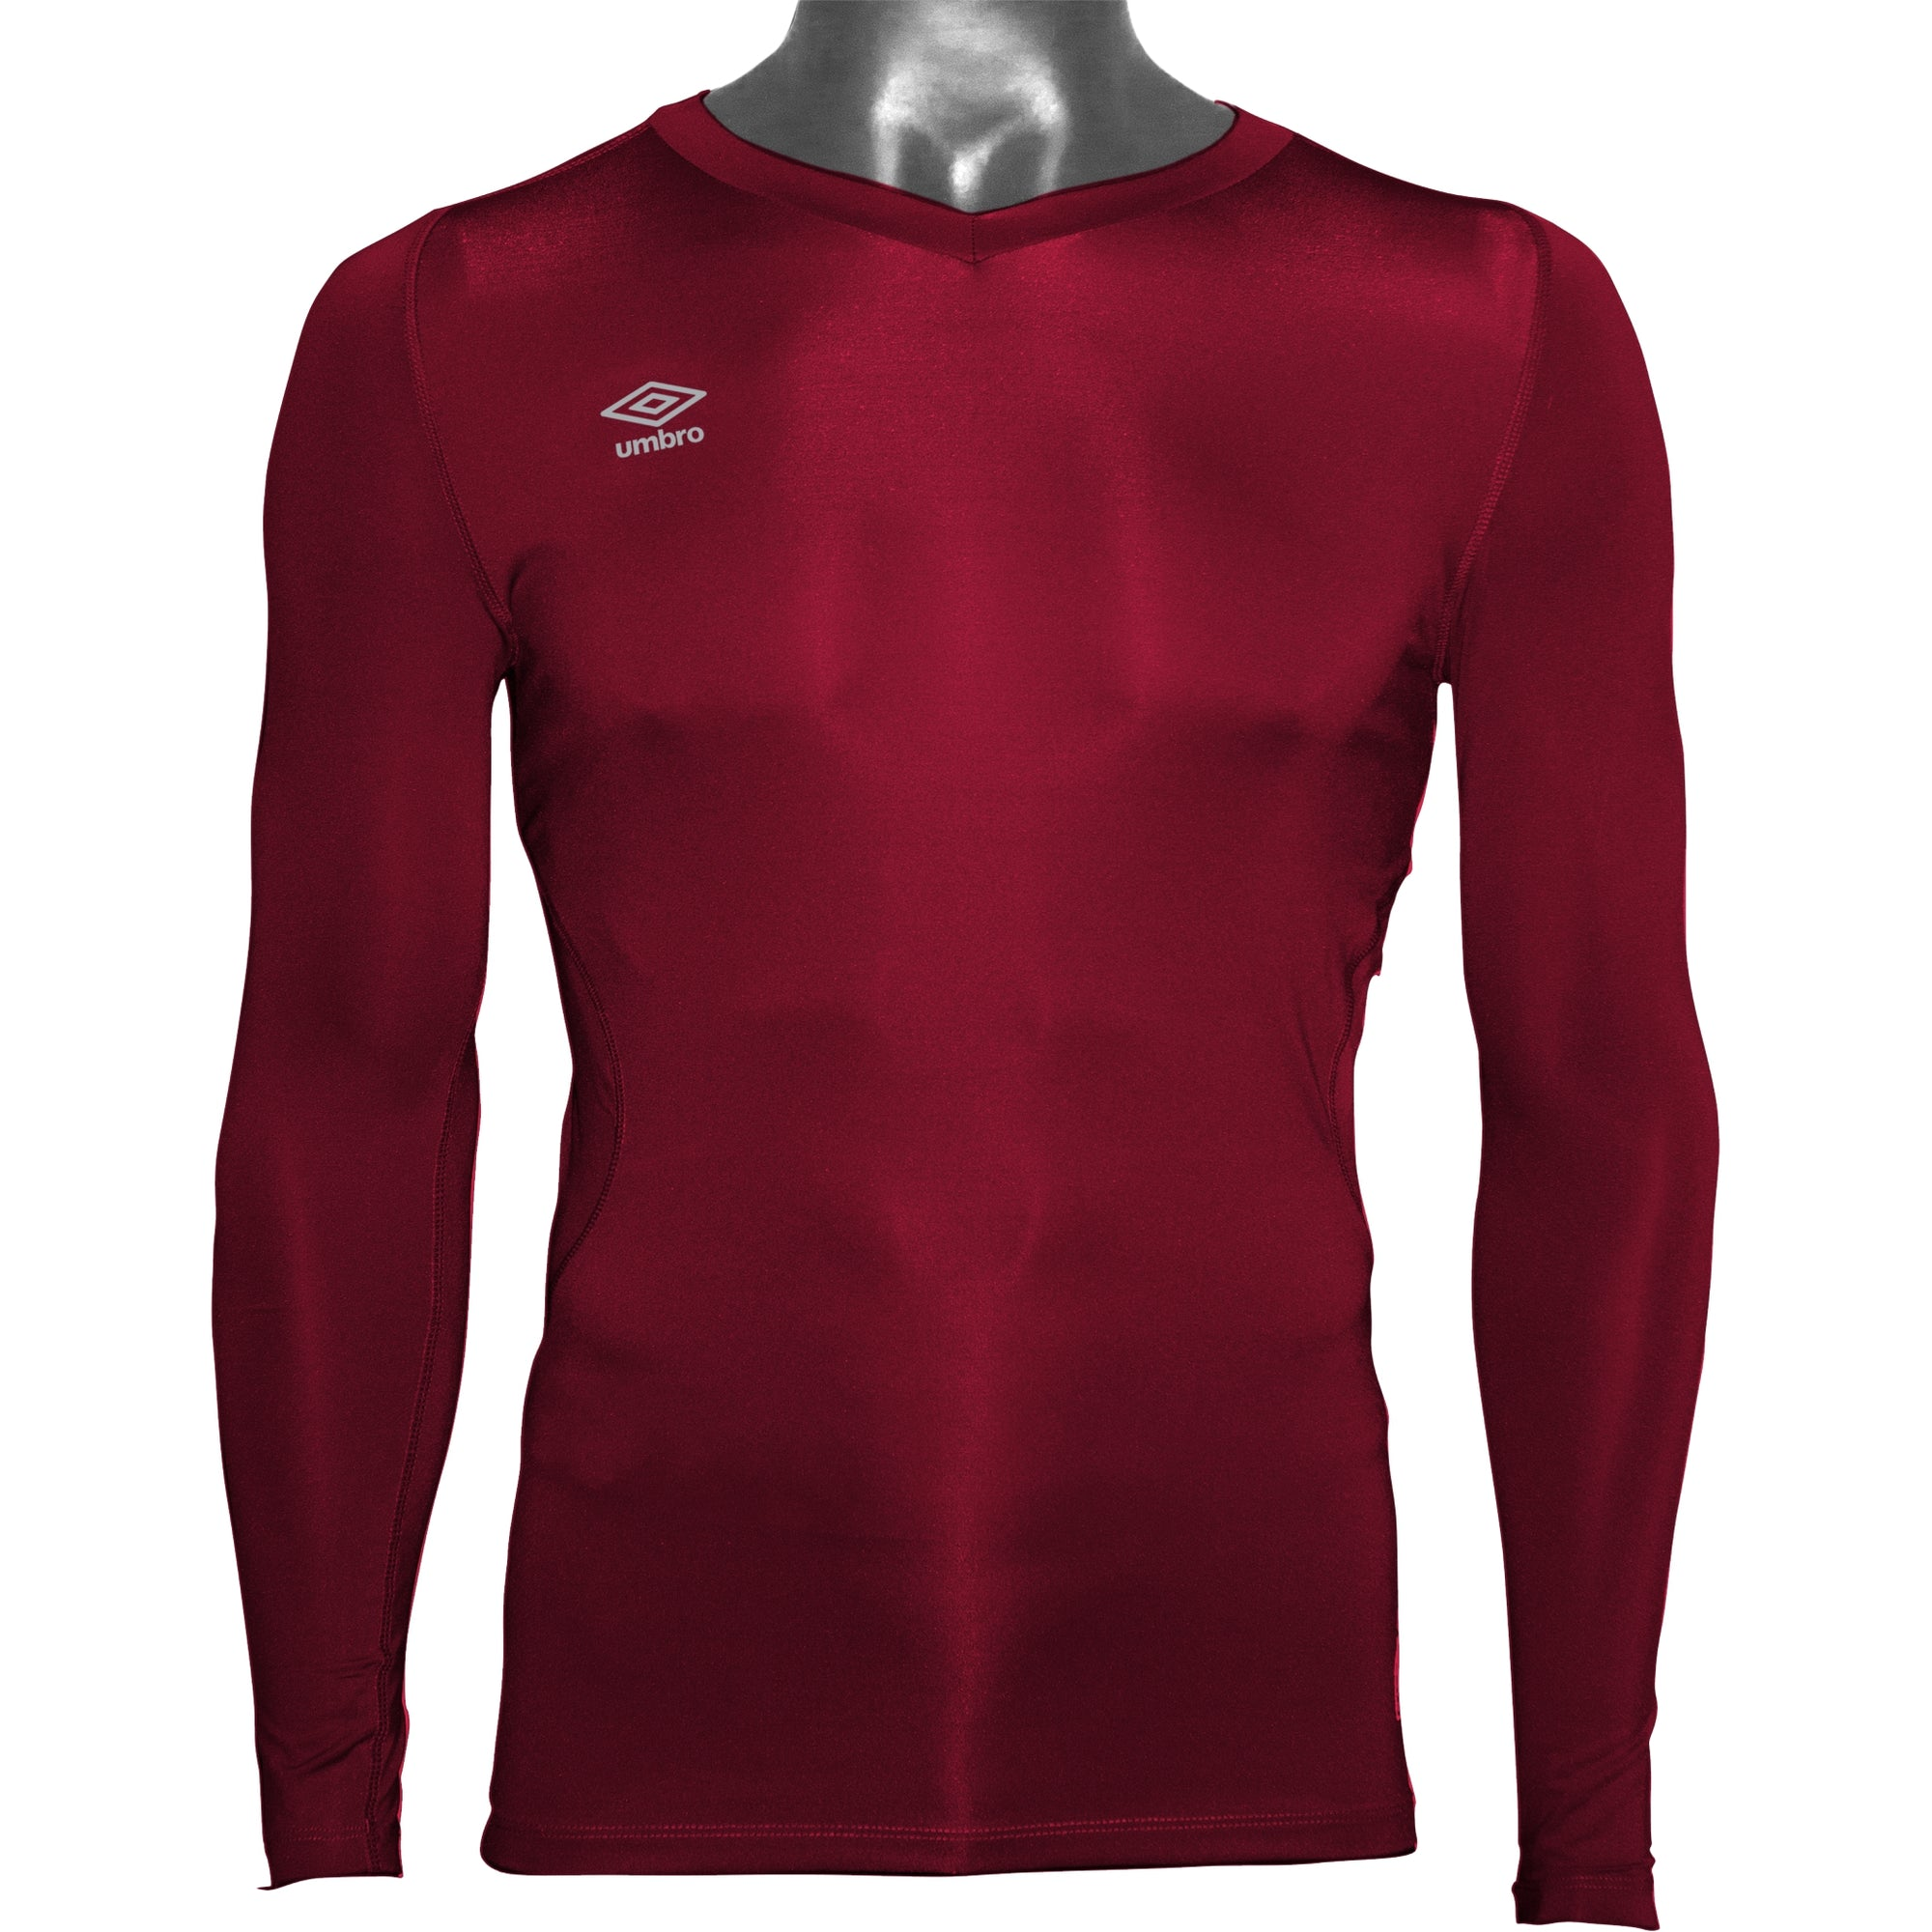 Umbro Elite V Neck baselayer in new claret with reflective stacked diamond logo on right chest